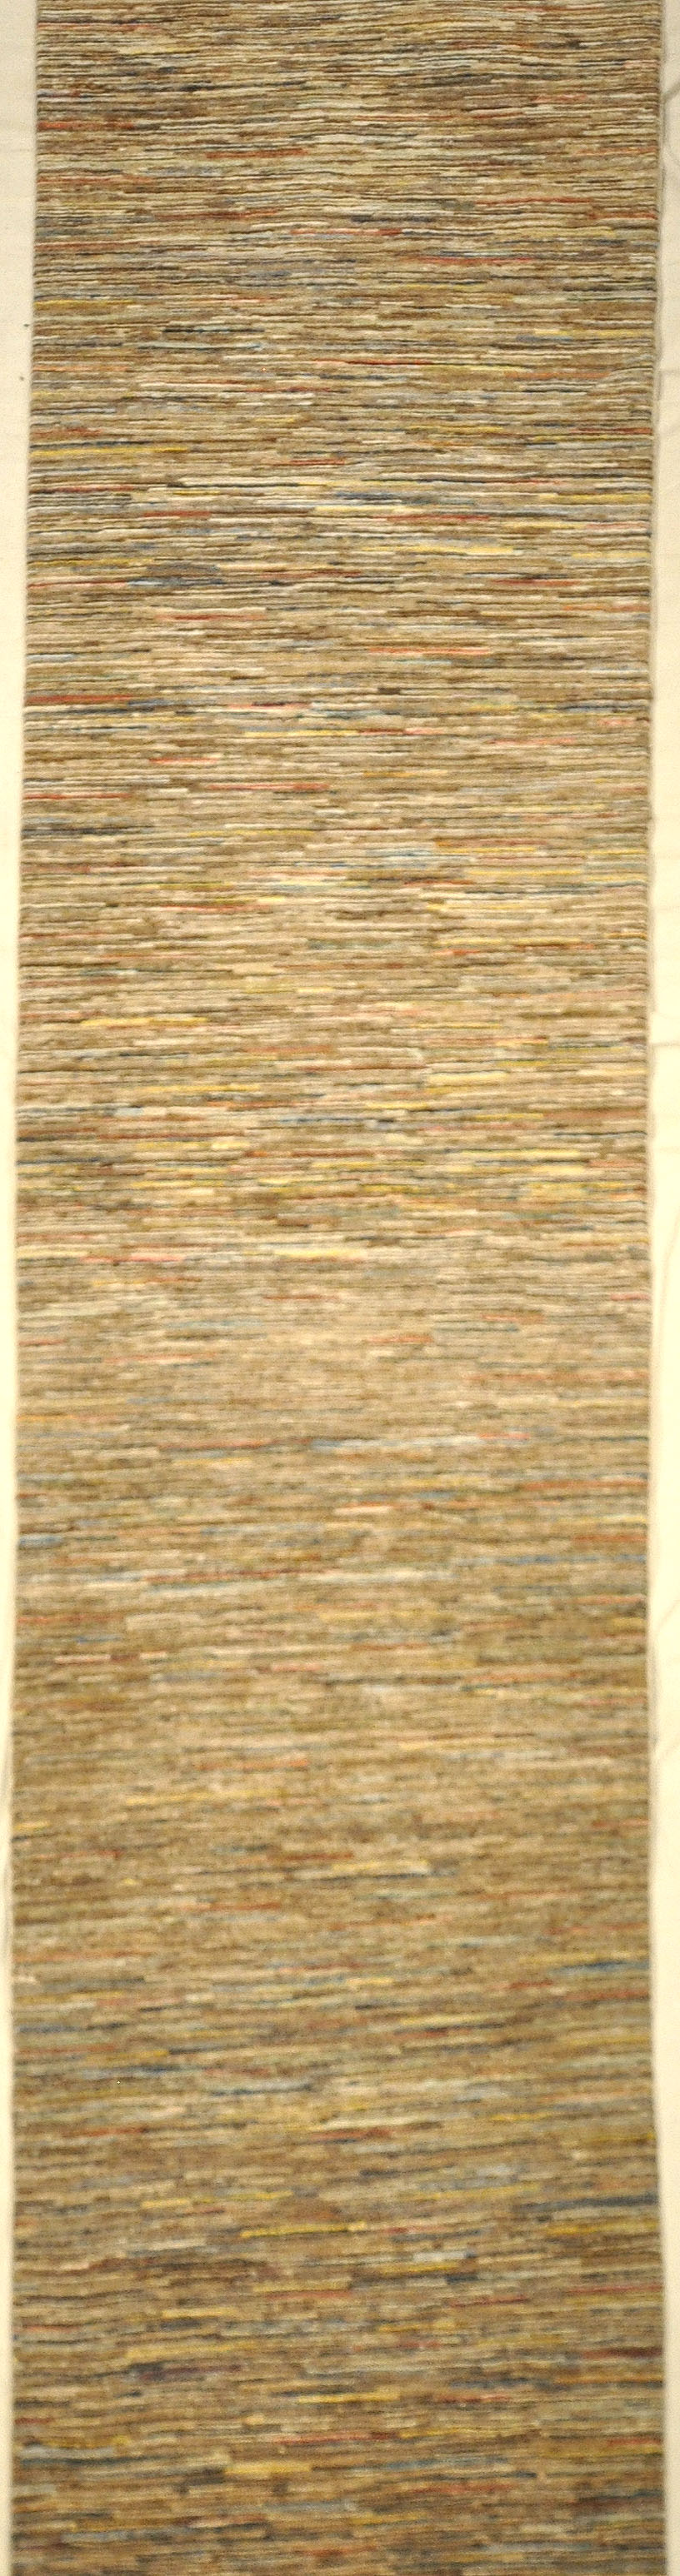 Leesa Organic Modern Stripes Runner Rug. Ziegler and Company in collaboration with designer Leesa Wilson Goldmuntz in Santa Barbara, California.